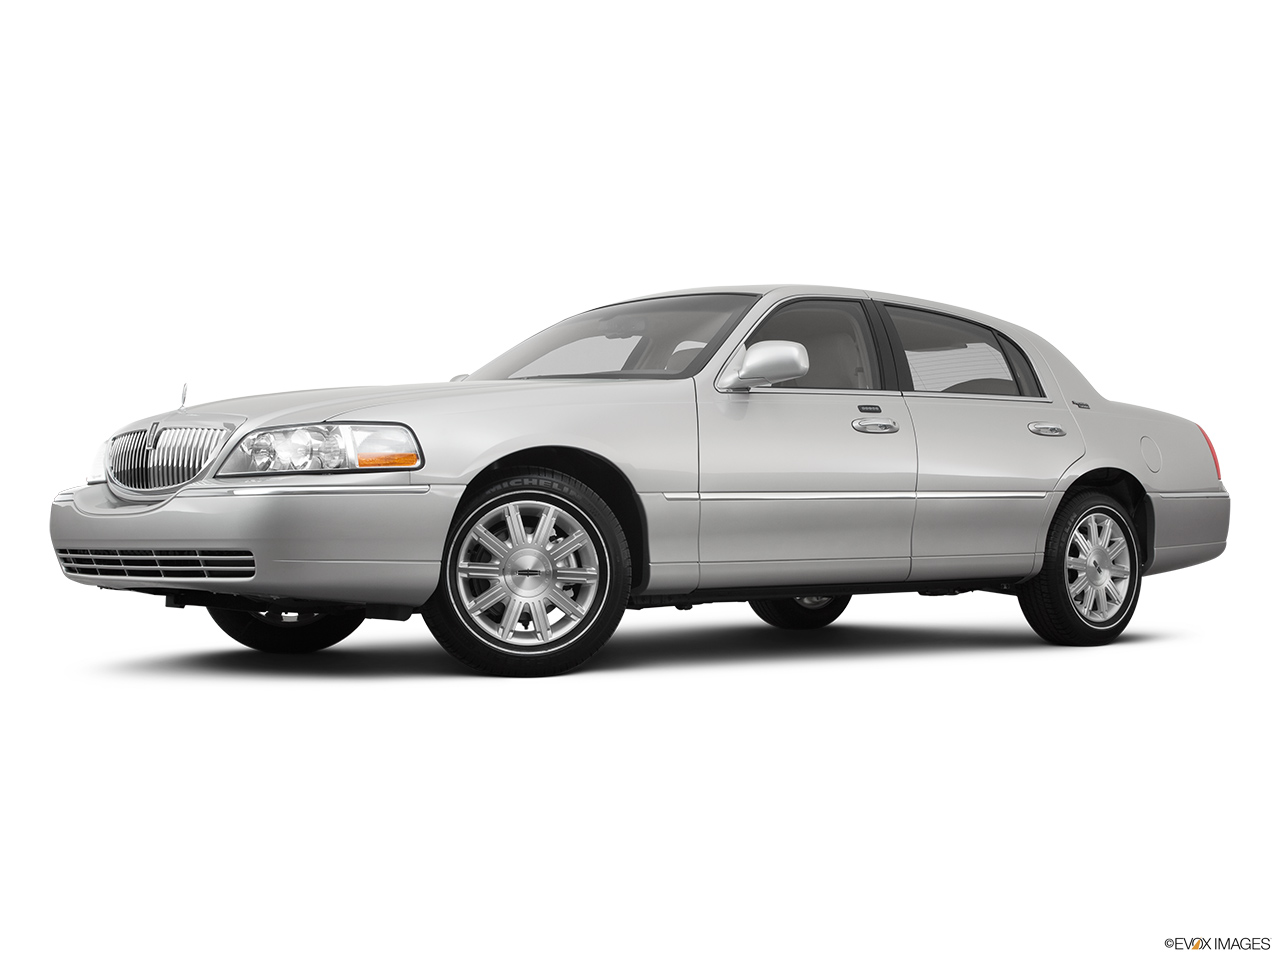 2011 Lincoln Town Car Signature Limited Low/wide front 5/8.